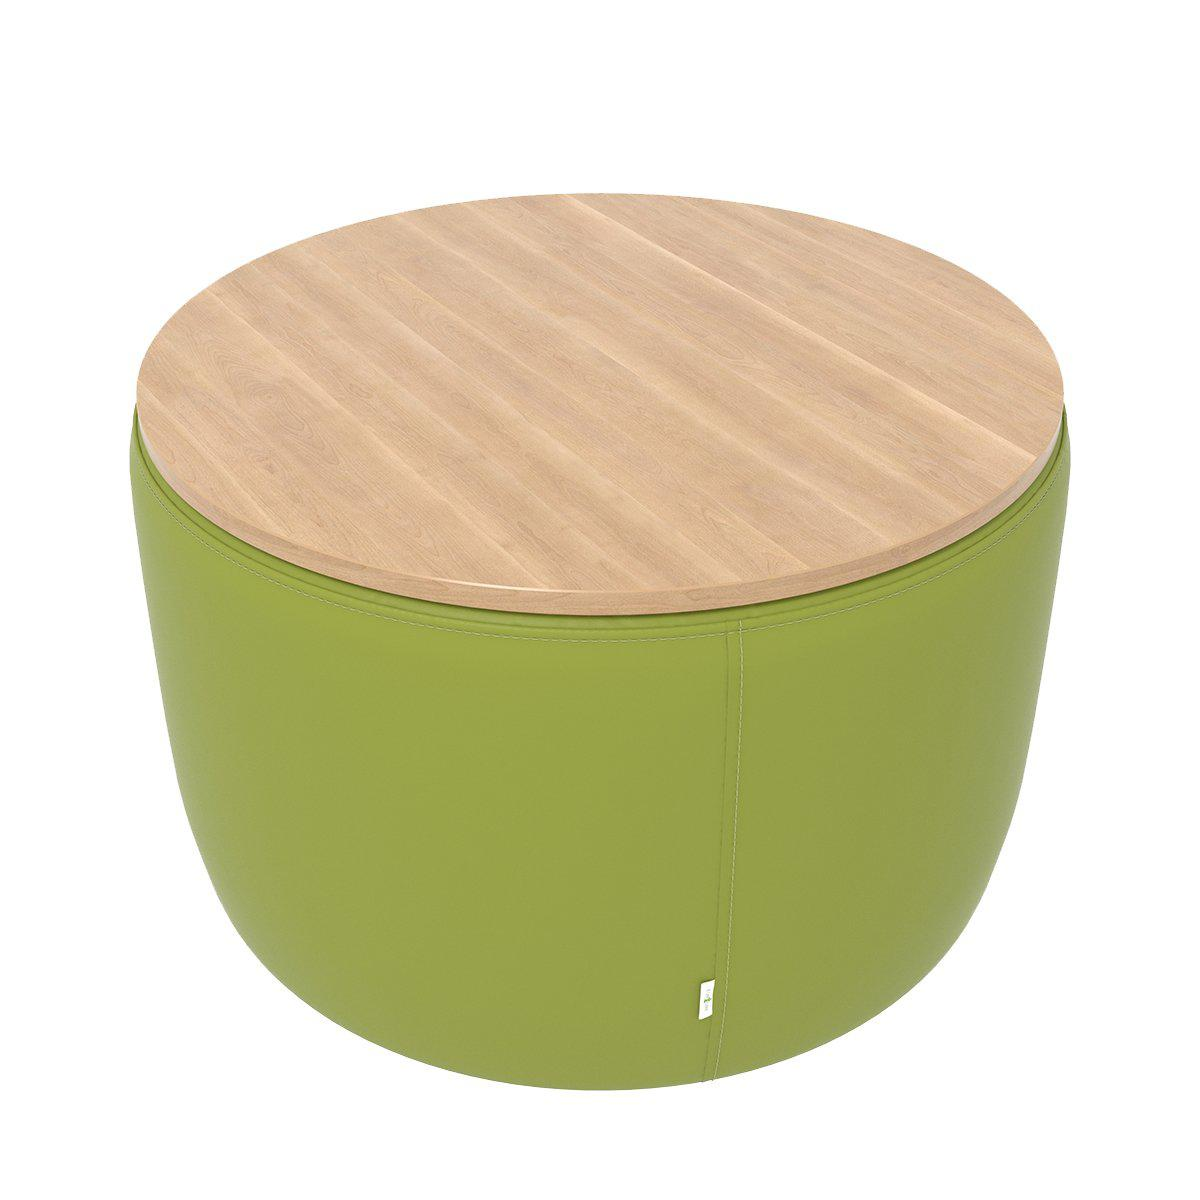 "Fomcore Ottoman Series 30"" Round Ottoman with 100% ALL-FOAM CORE, Antibacterial Vinyl Upholstered Side and Laminate Top, LIFETIME WARRANTY"